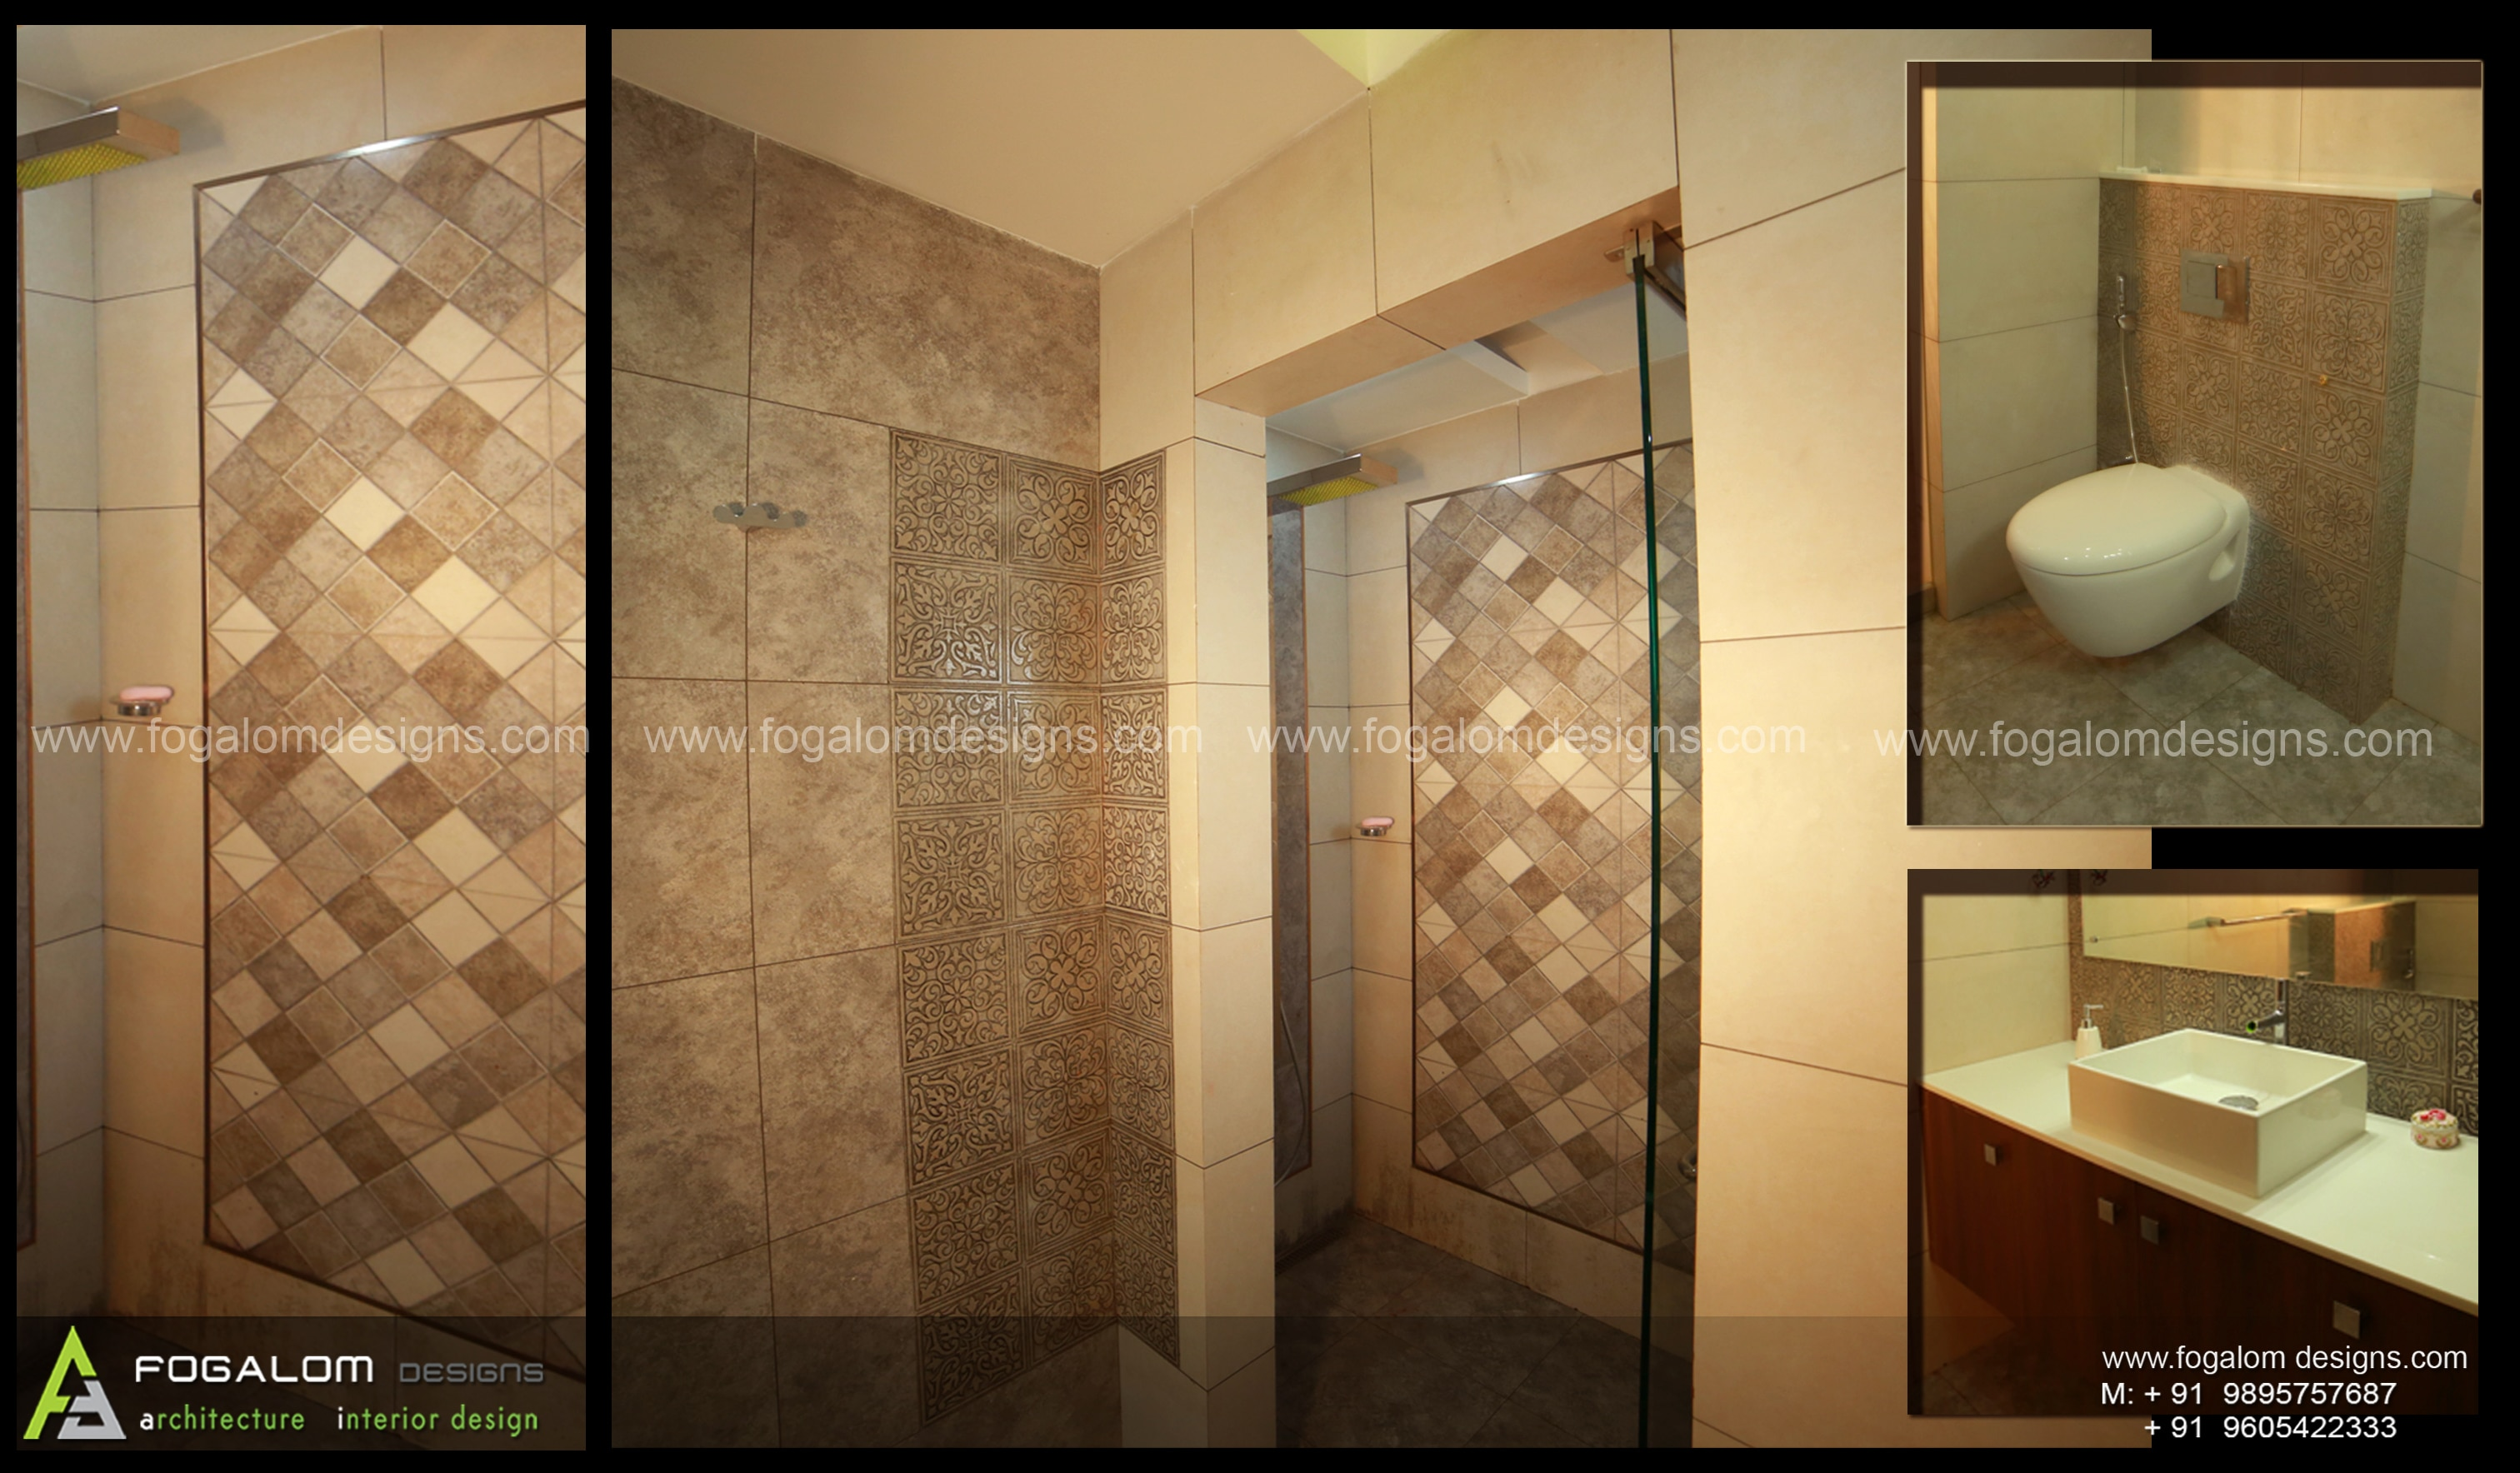 Design : Fogalom Designs  for more details : 9895757687 , 9605422333  visit our site here : www.fogalomdesigns.com